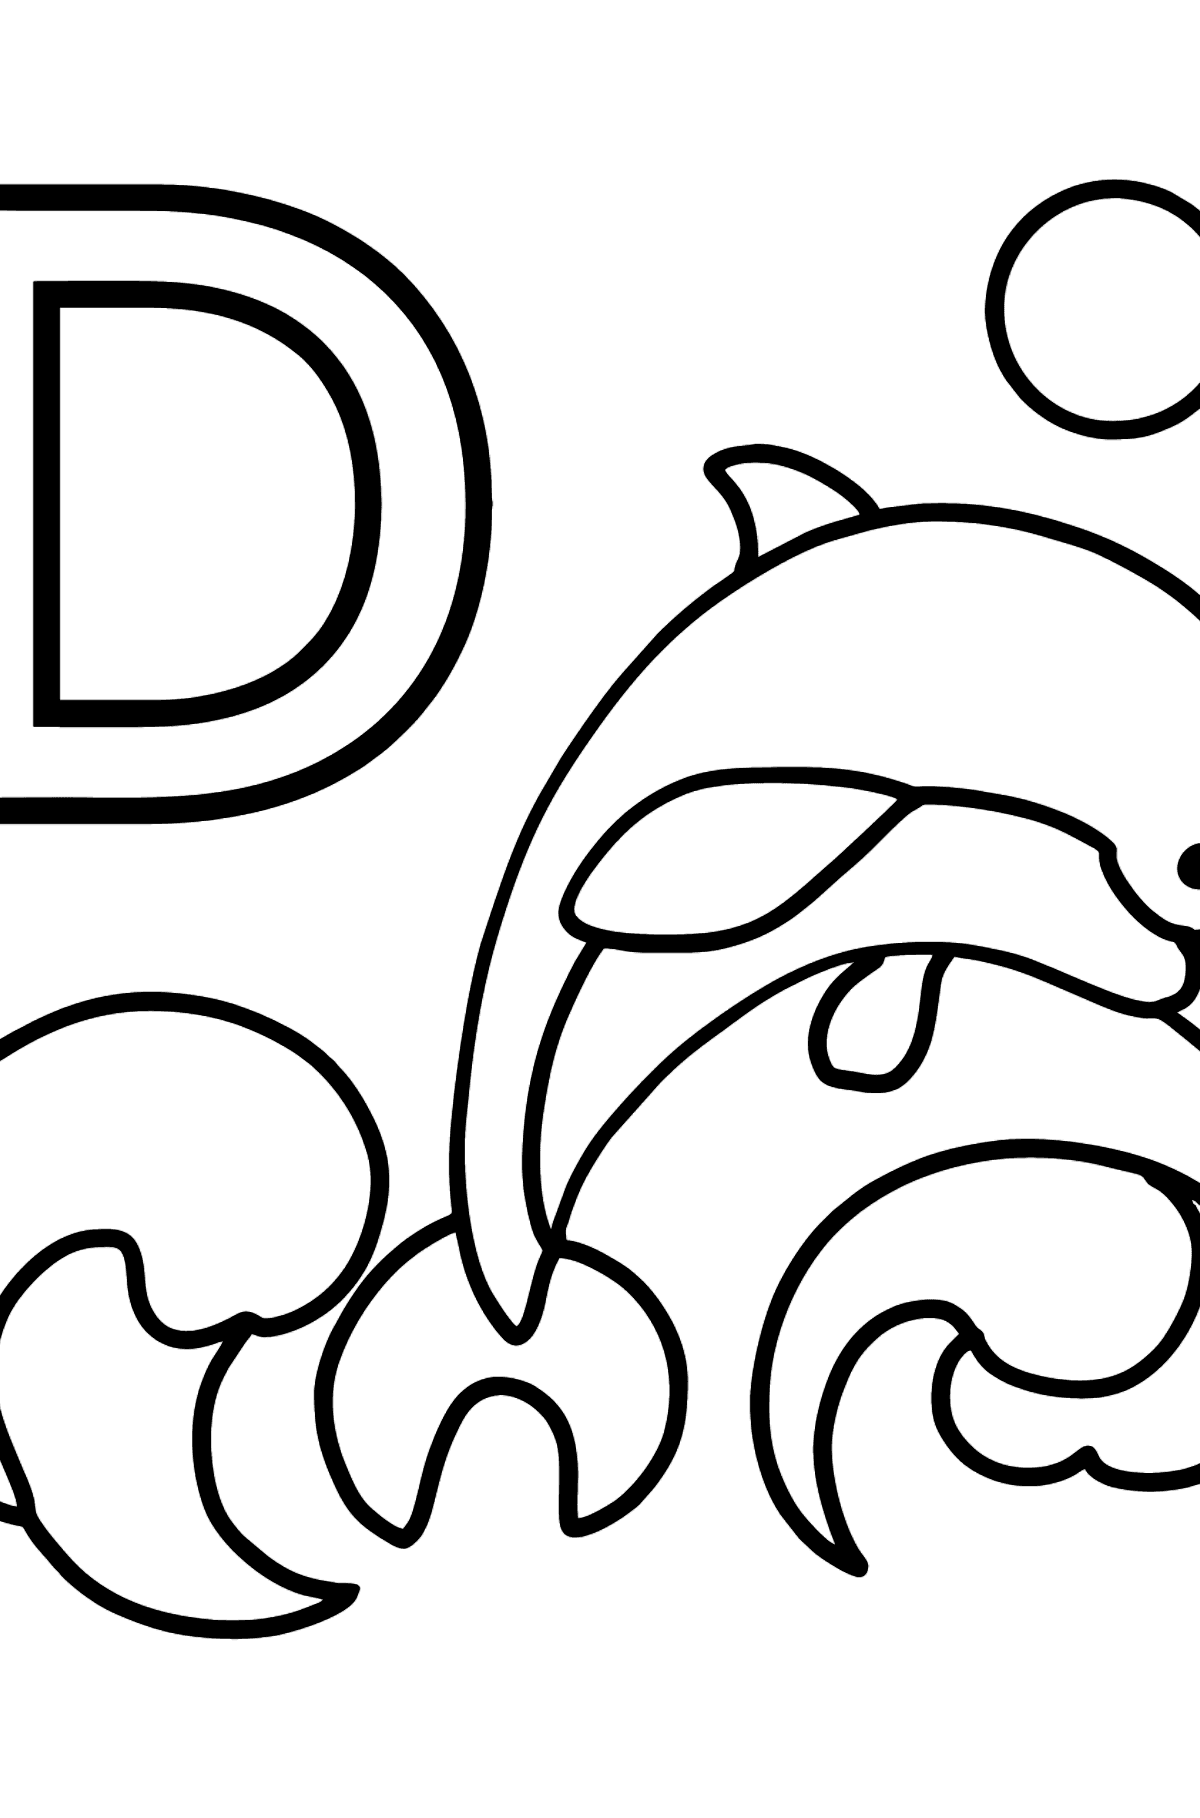 Spanish Letter D coloring pages - DELFÍN - Coloring Pages for Kids